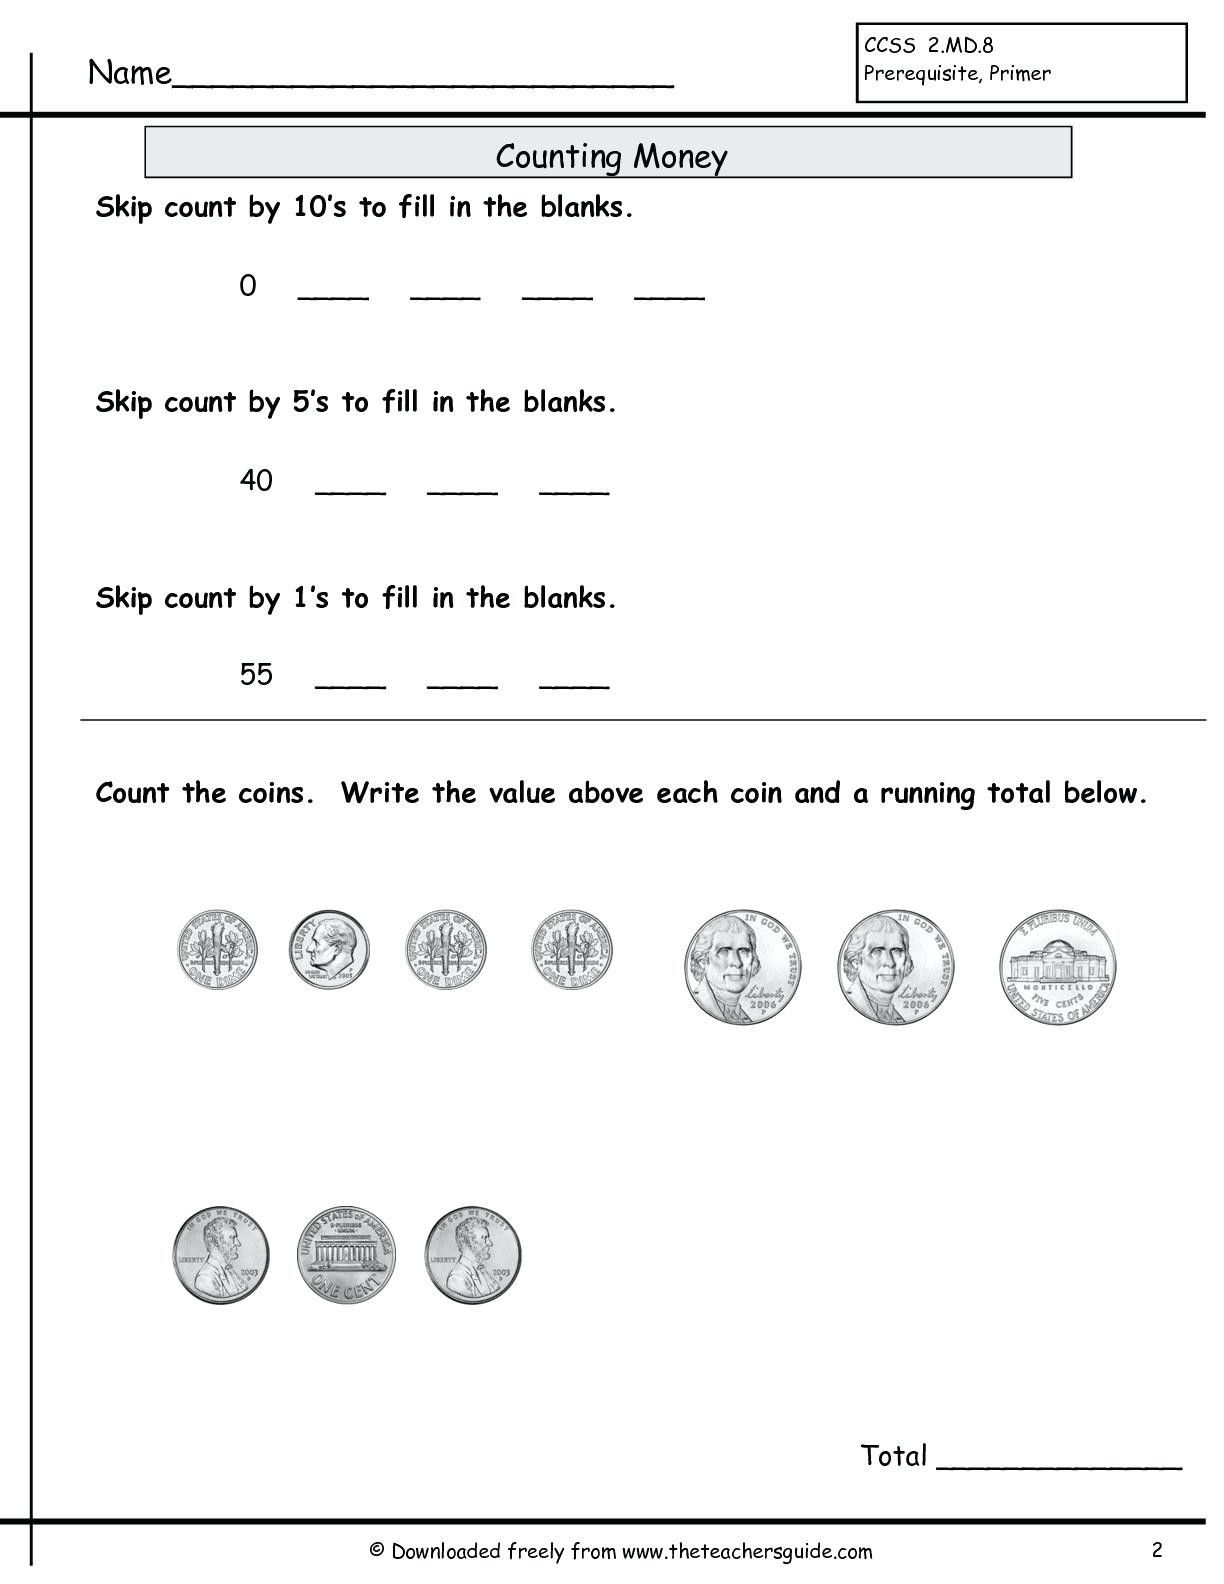 Legal Counting Money Worksheets